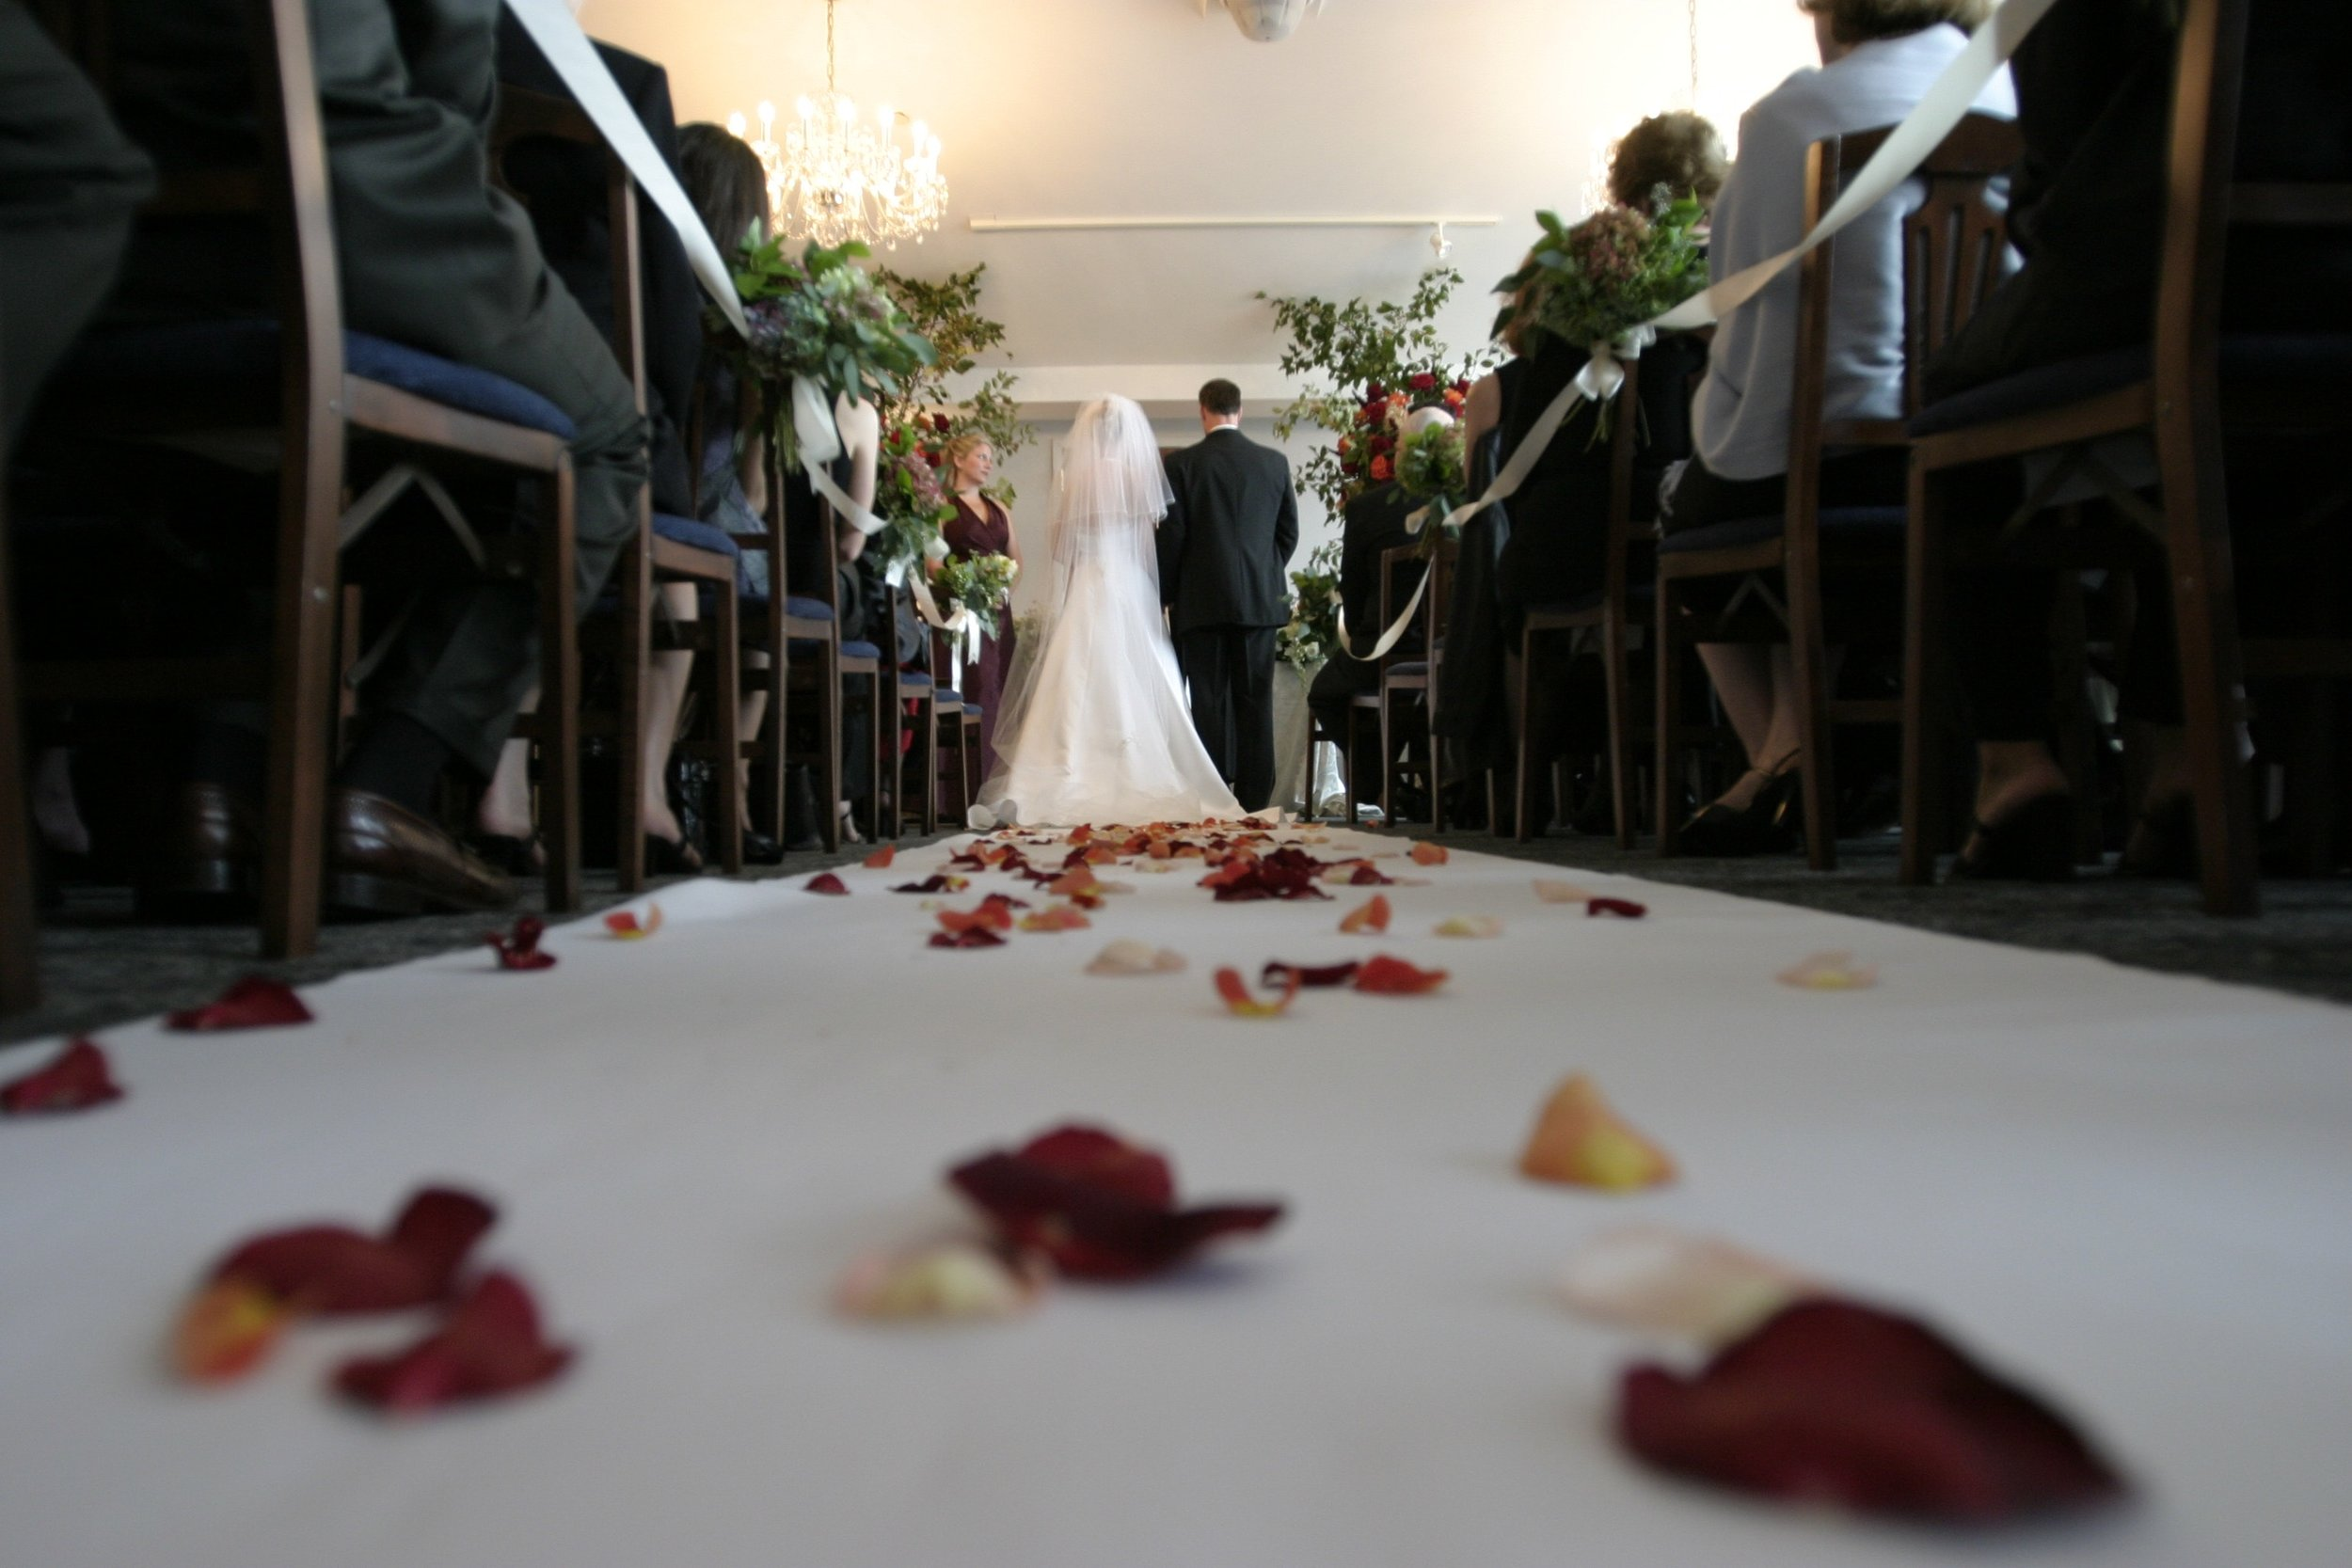 Weddin Ceremony Bridge Groom Aisle Rose Petals.jpg